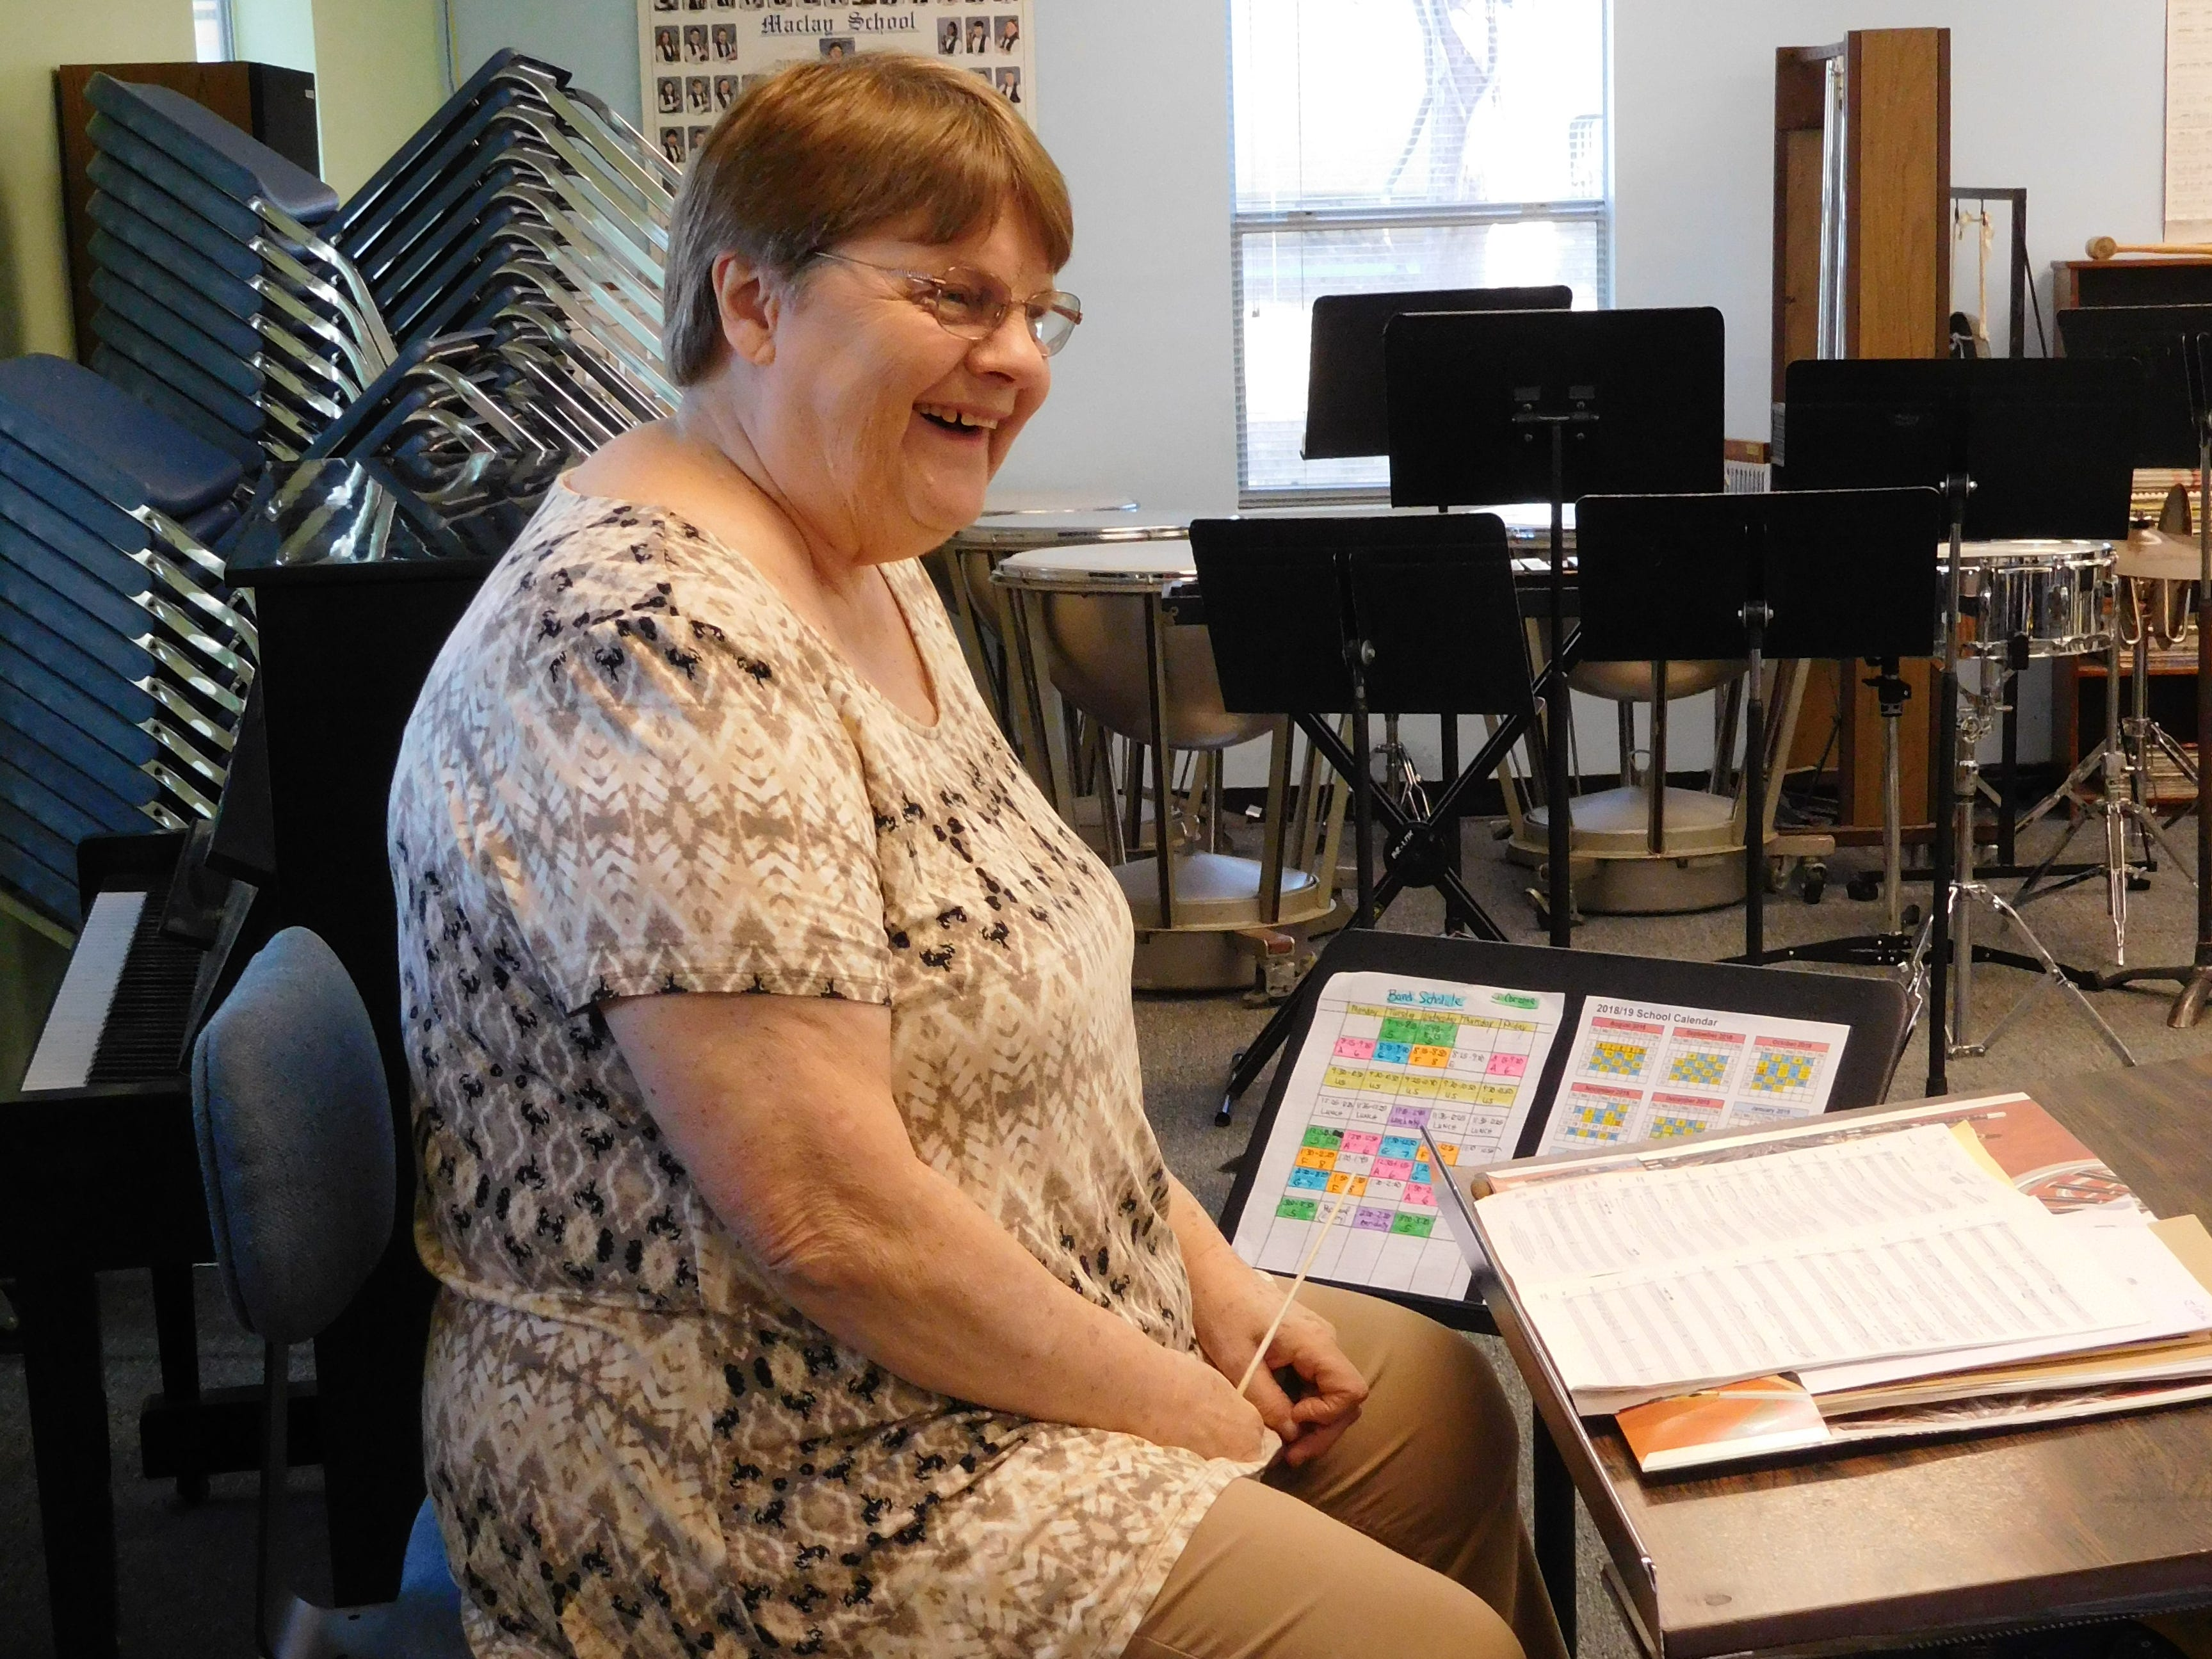 Longtime Maclay music teacher launched band program